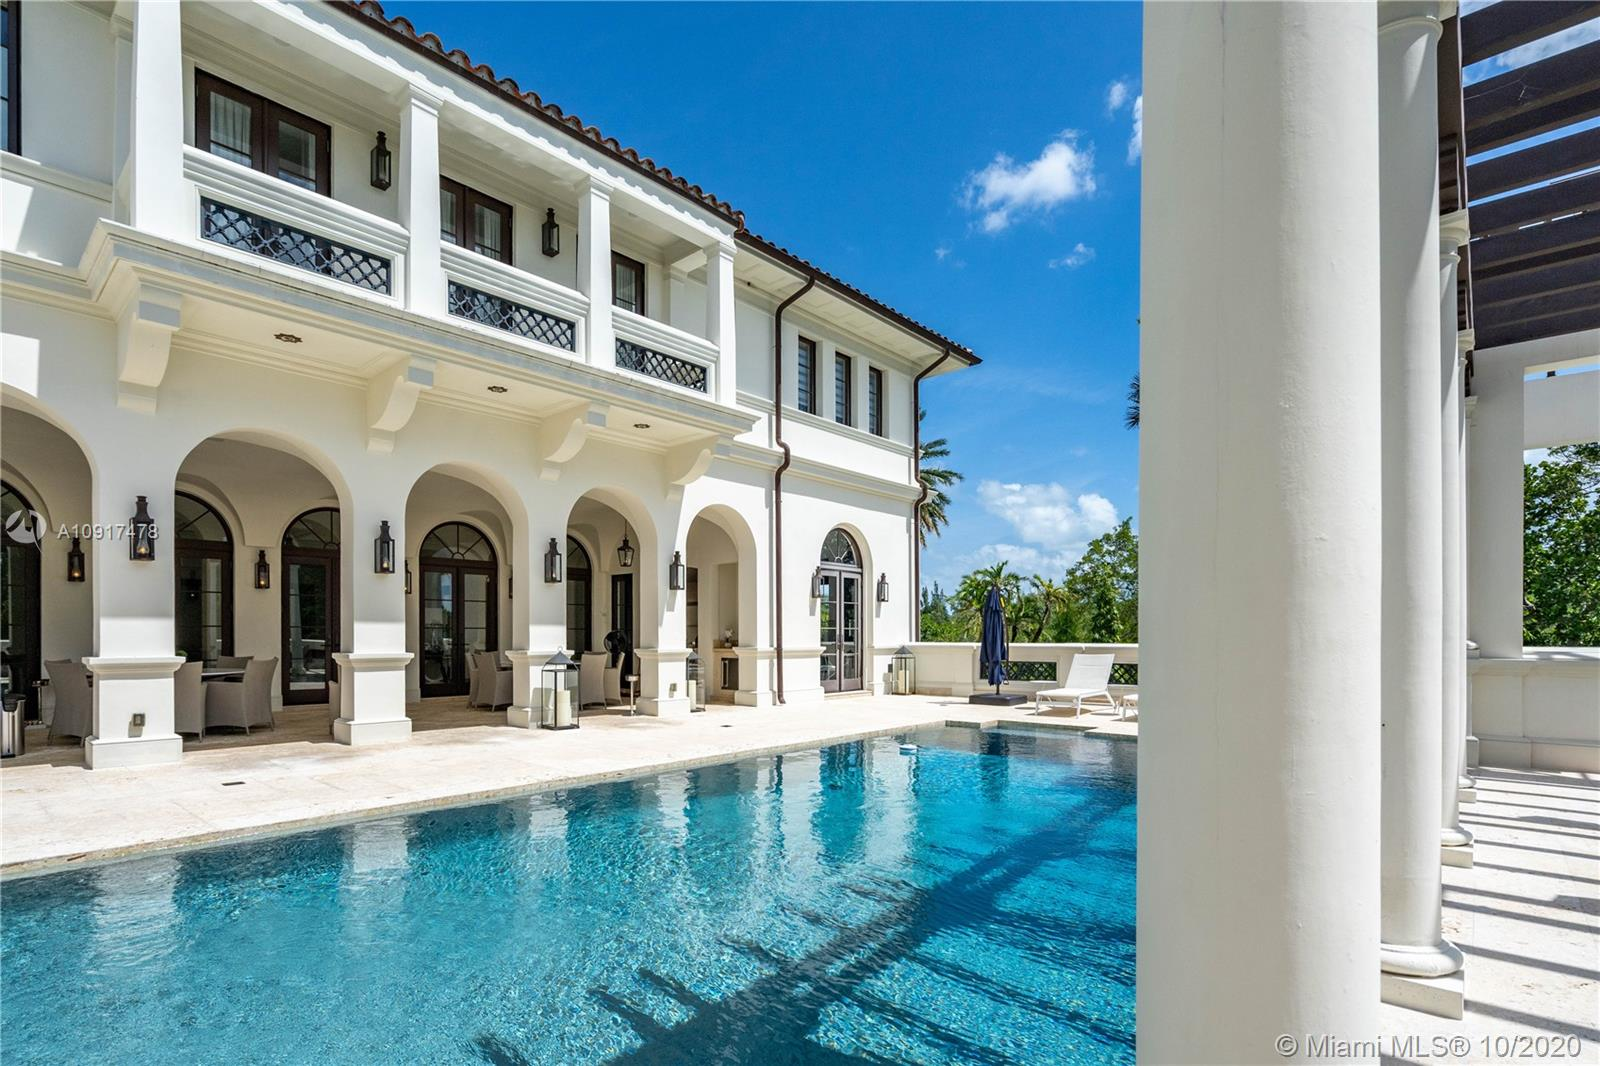 300 Costanera rd- coral-gables-fl-33143-a10917478-Pic17